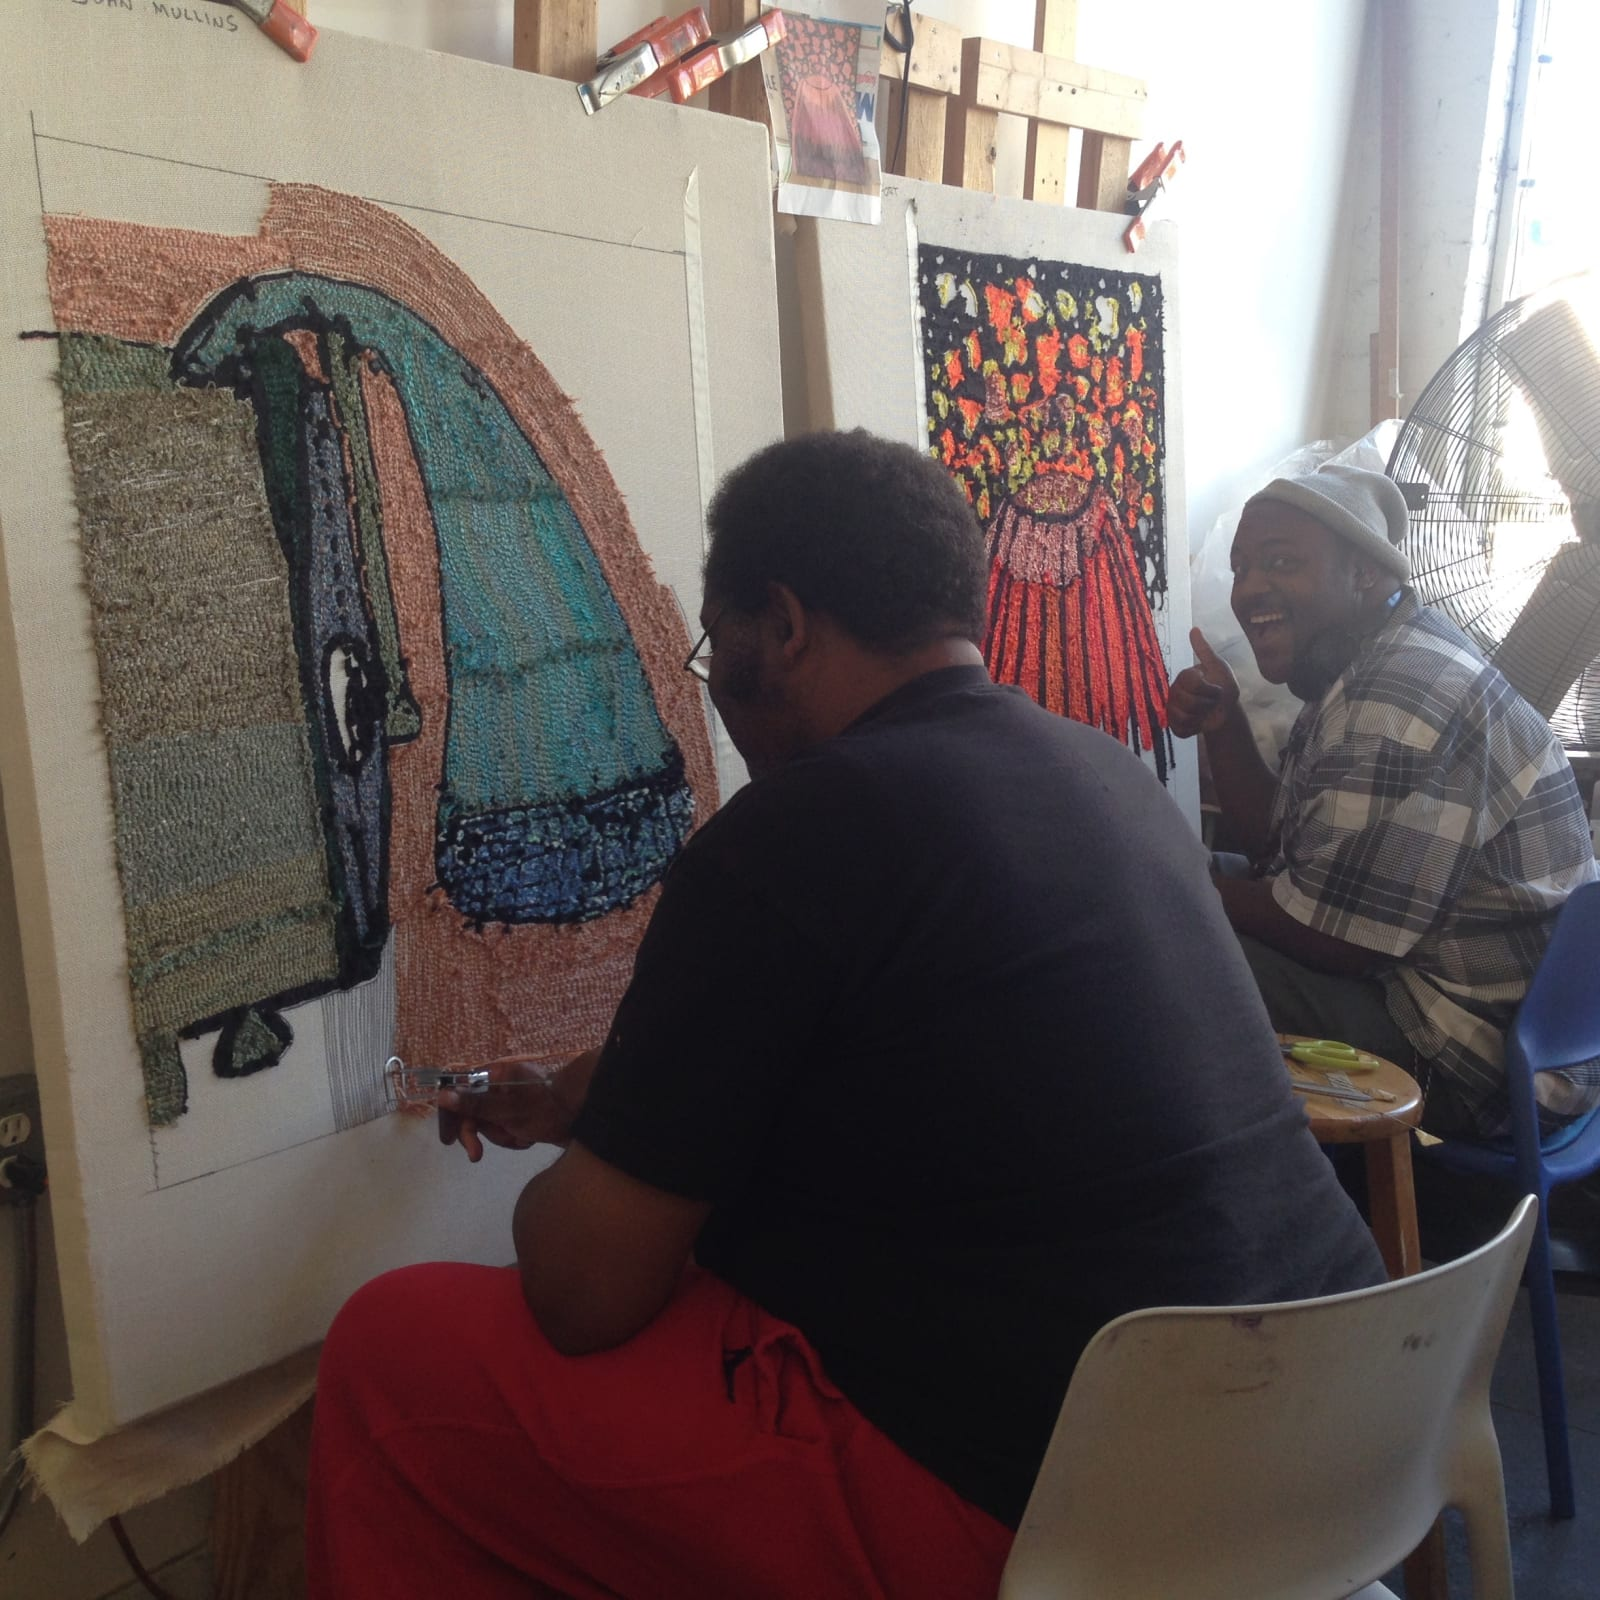 Artists Larry Randolph (left) and Ray Vickers, working on rugs designed by John Mullins (alum) and D'Lisa Fort, respectively.